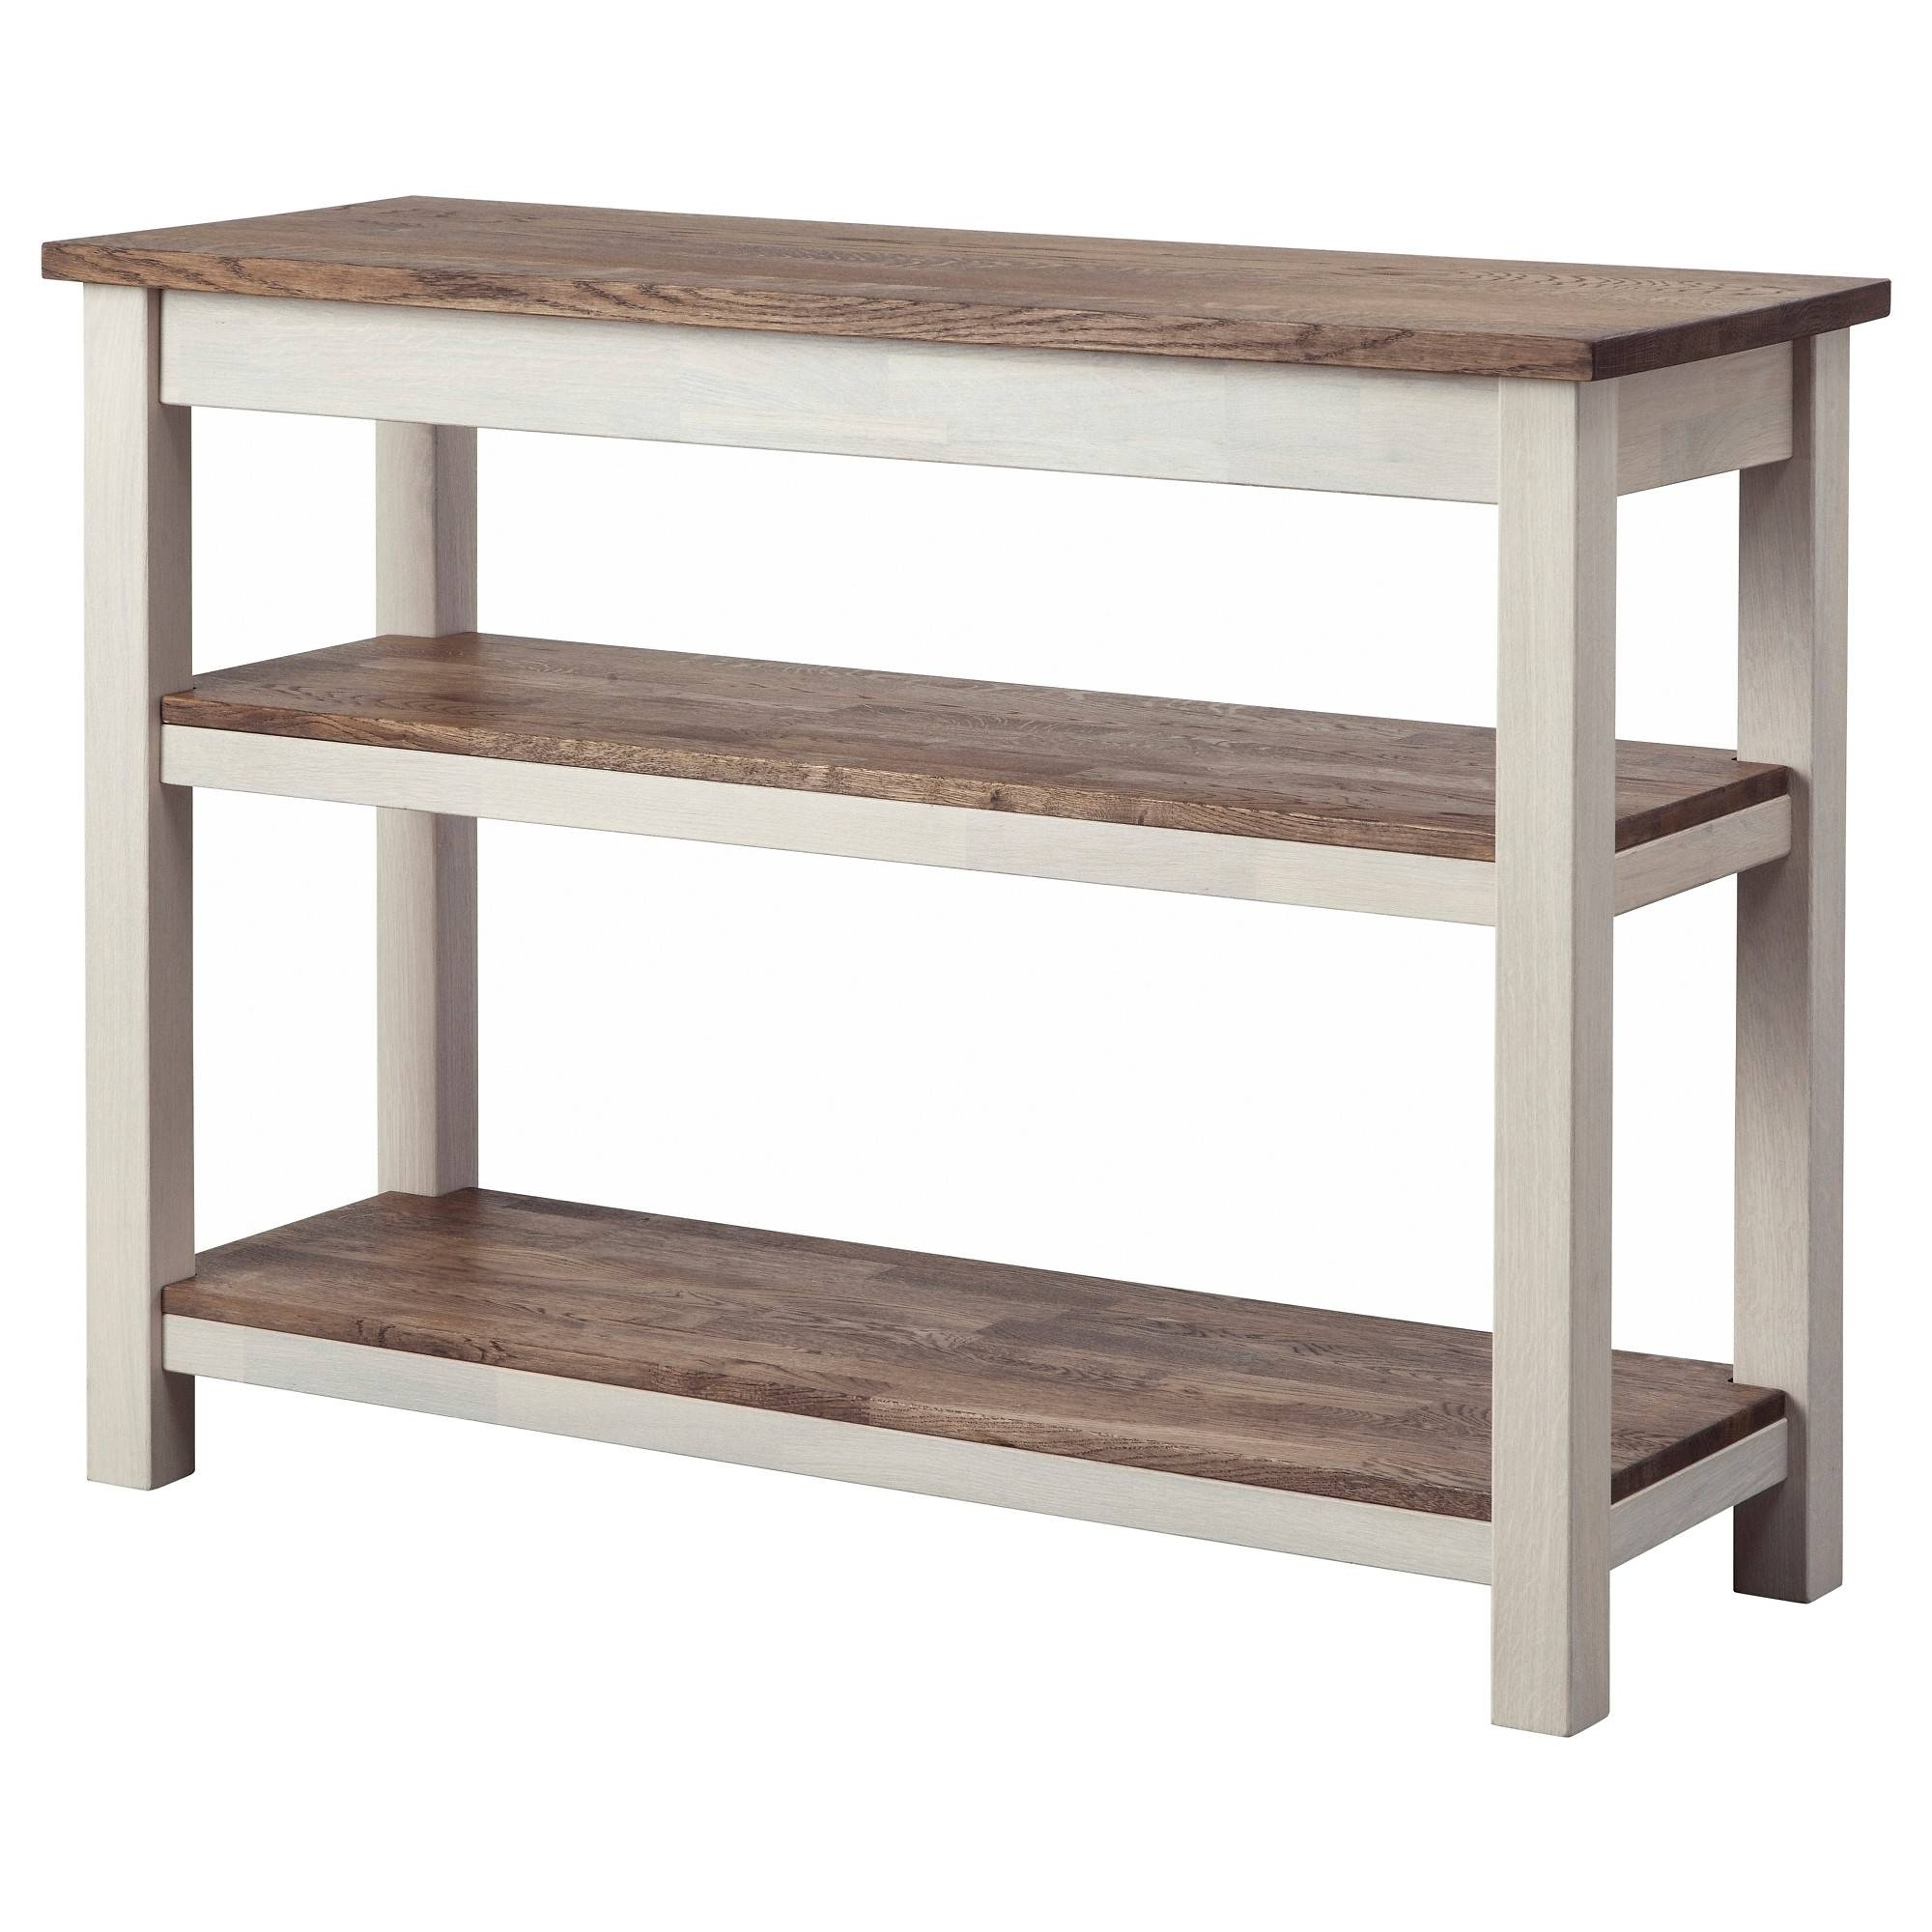 Kejsarkrona Sideboard Oak/white 117x43 Cm – Ikea With Most Up To Date Sideboard Tables (View 3 of 15)